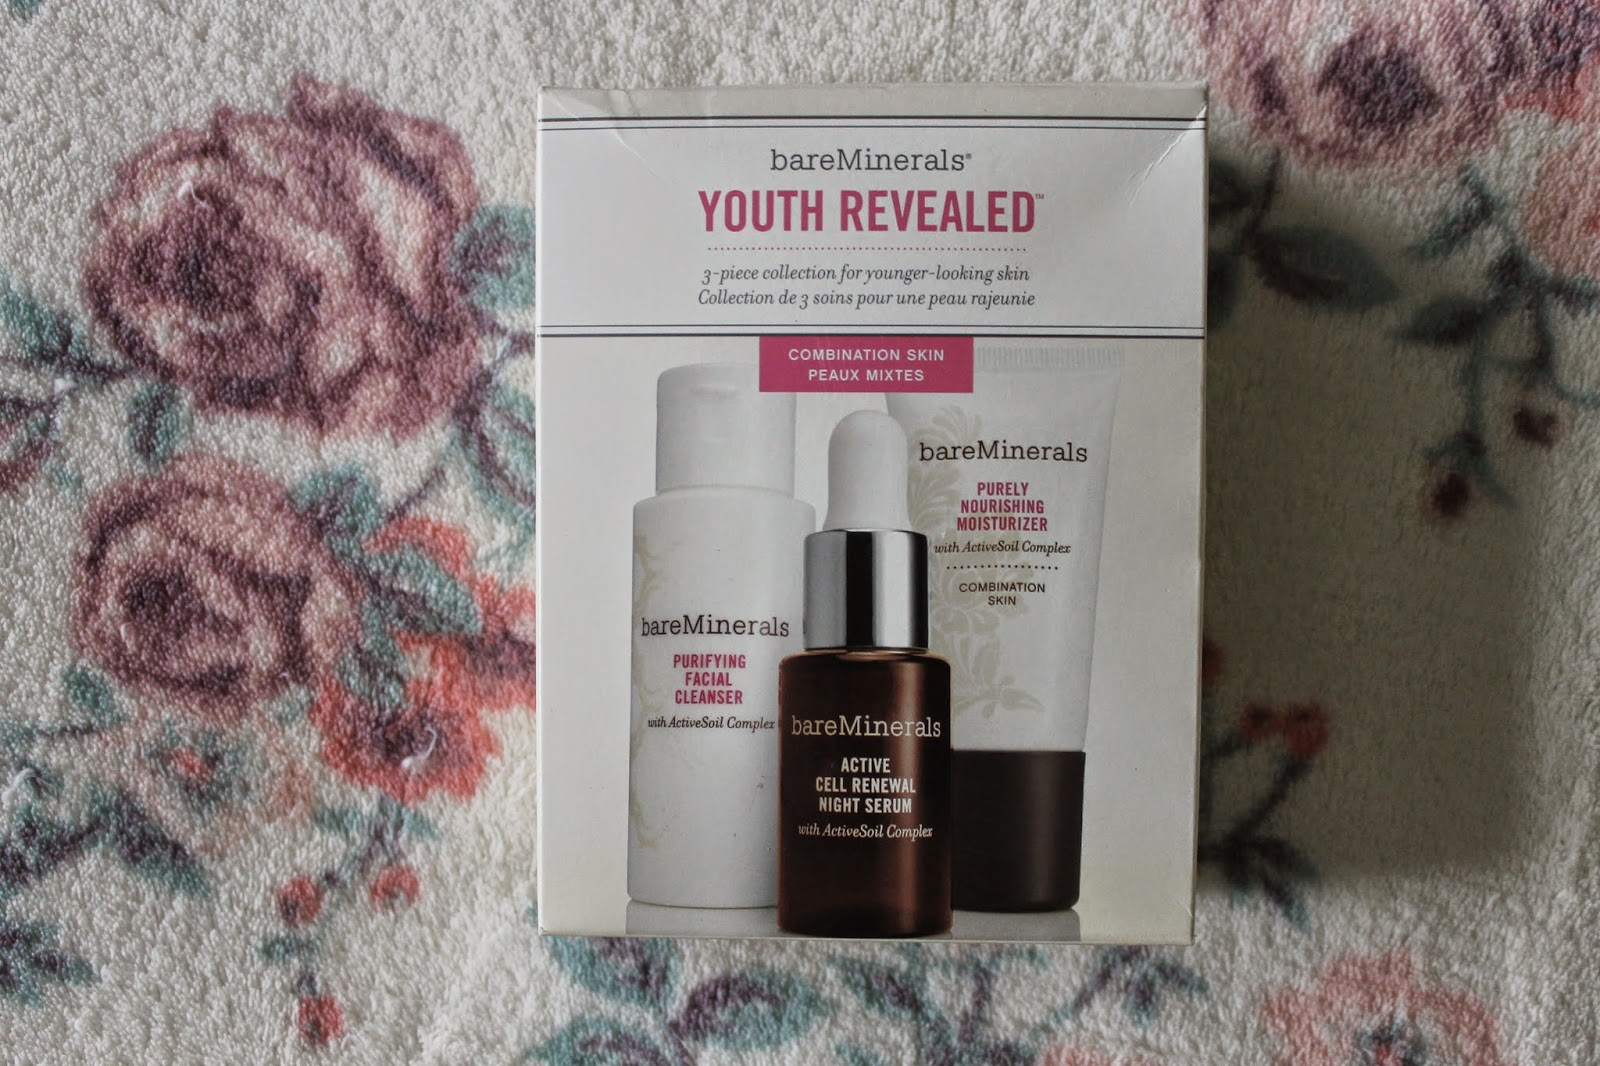 bareMinerals Youth Revealed Kit